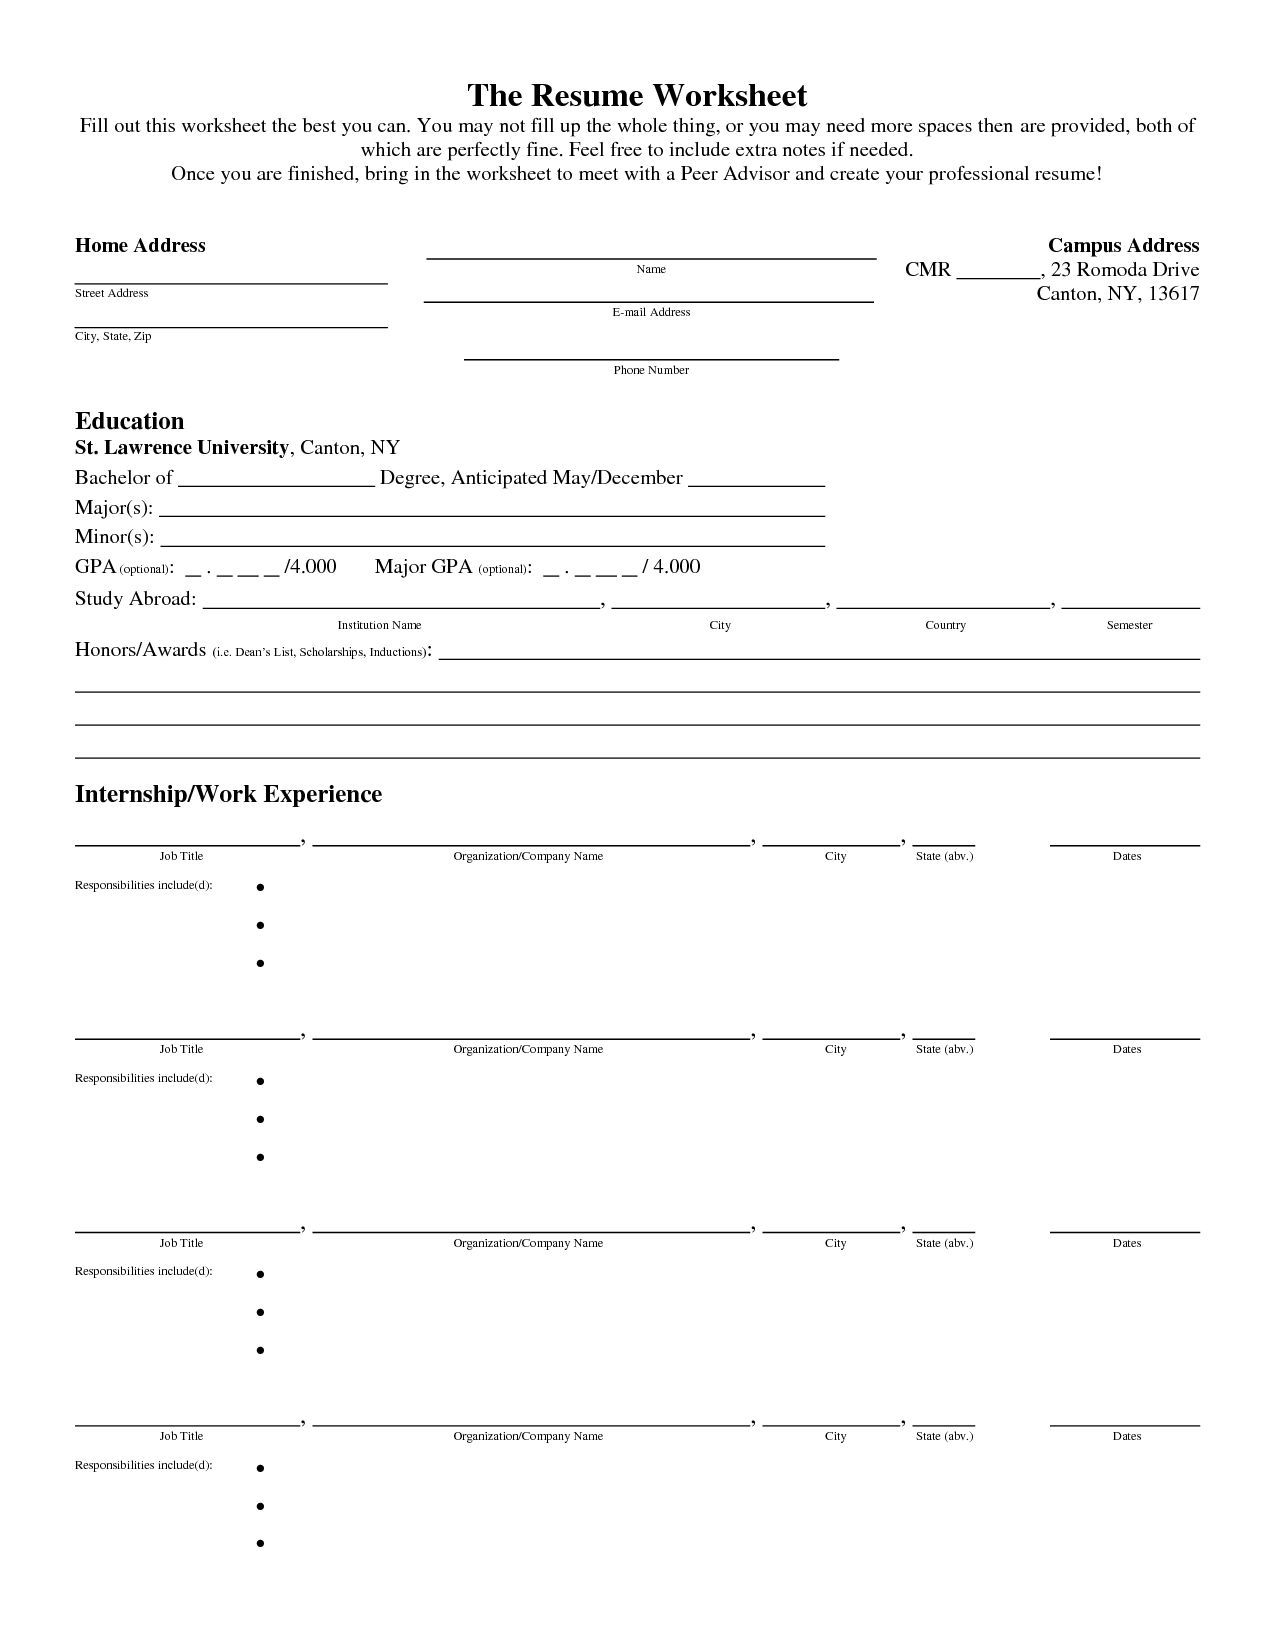 Resume Builder Worksheet Free Bulder Build Intended Using Your